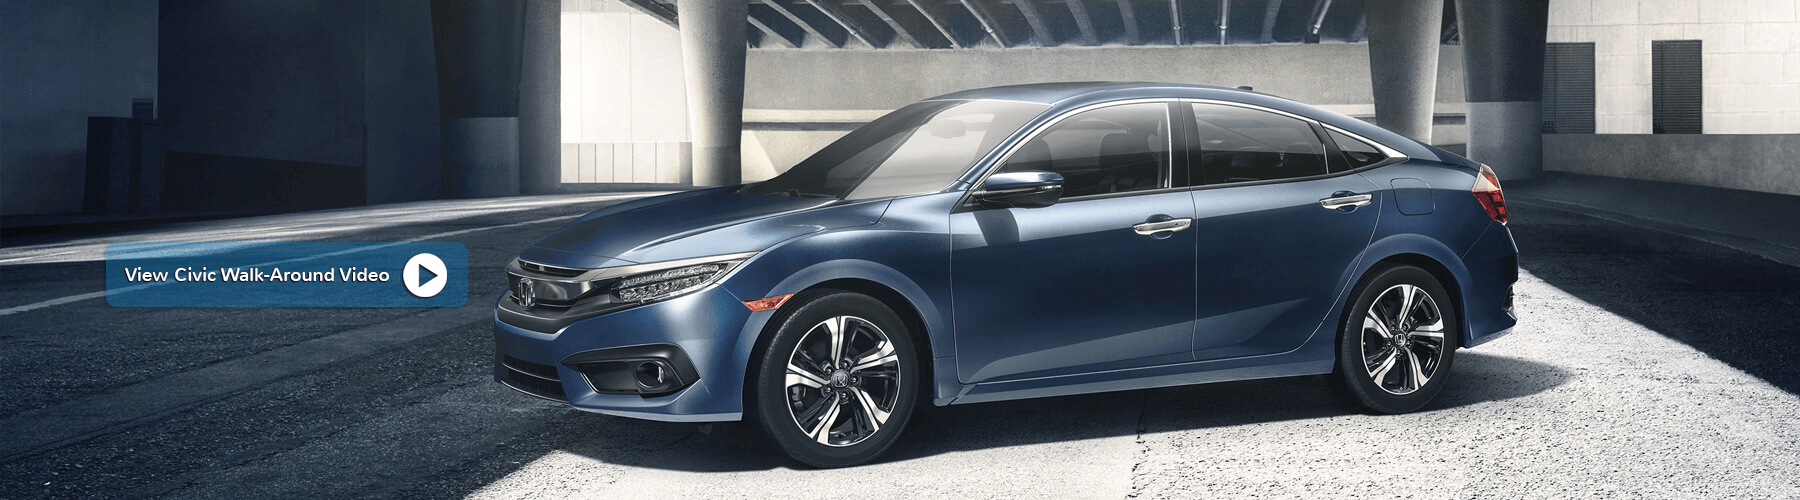 2017 Honda Civic Sedan Banner